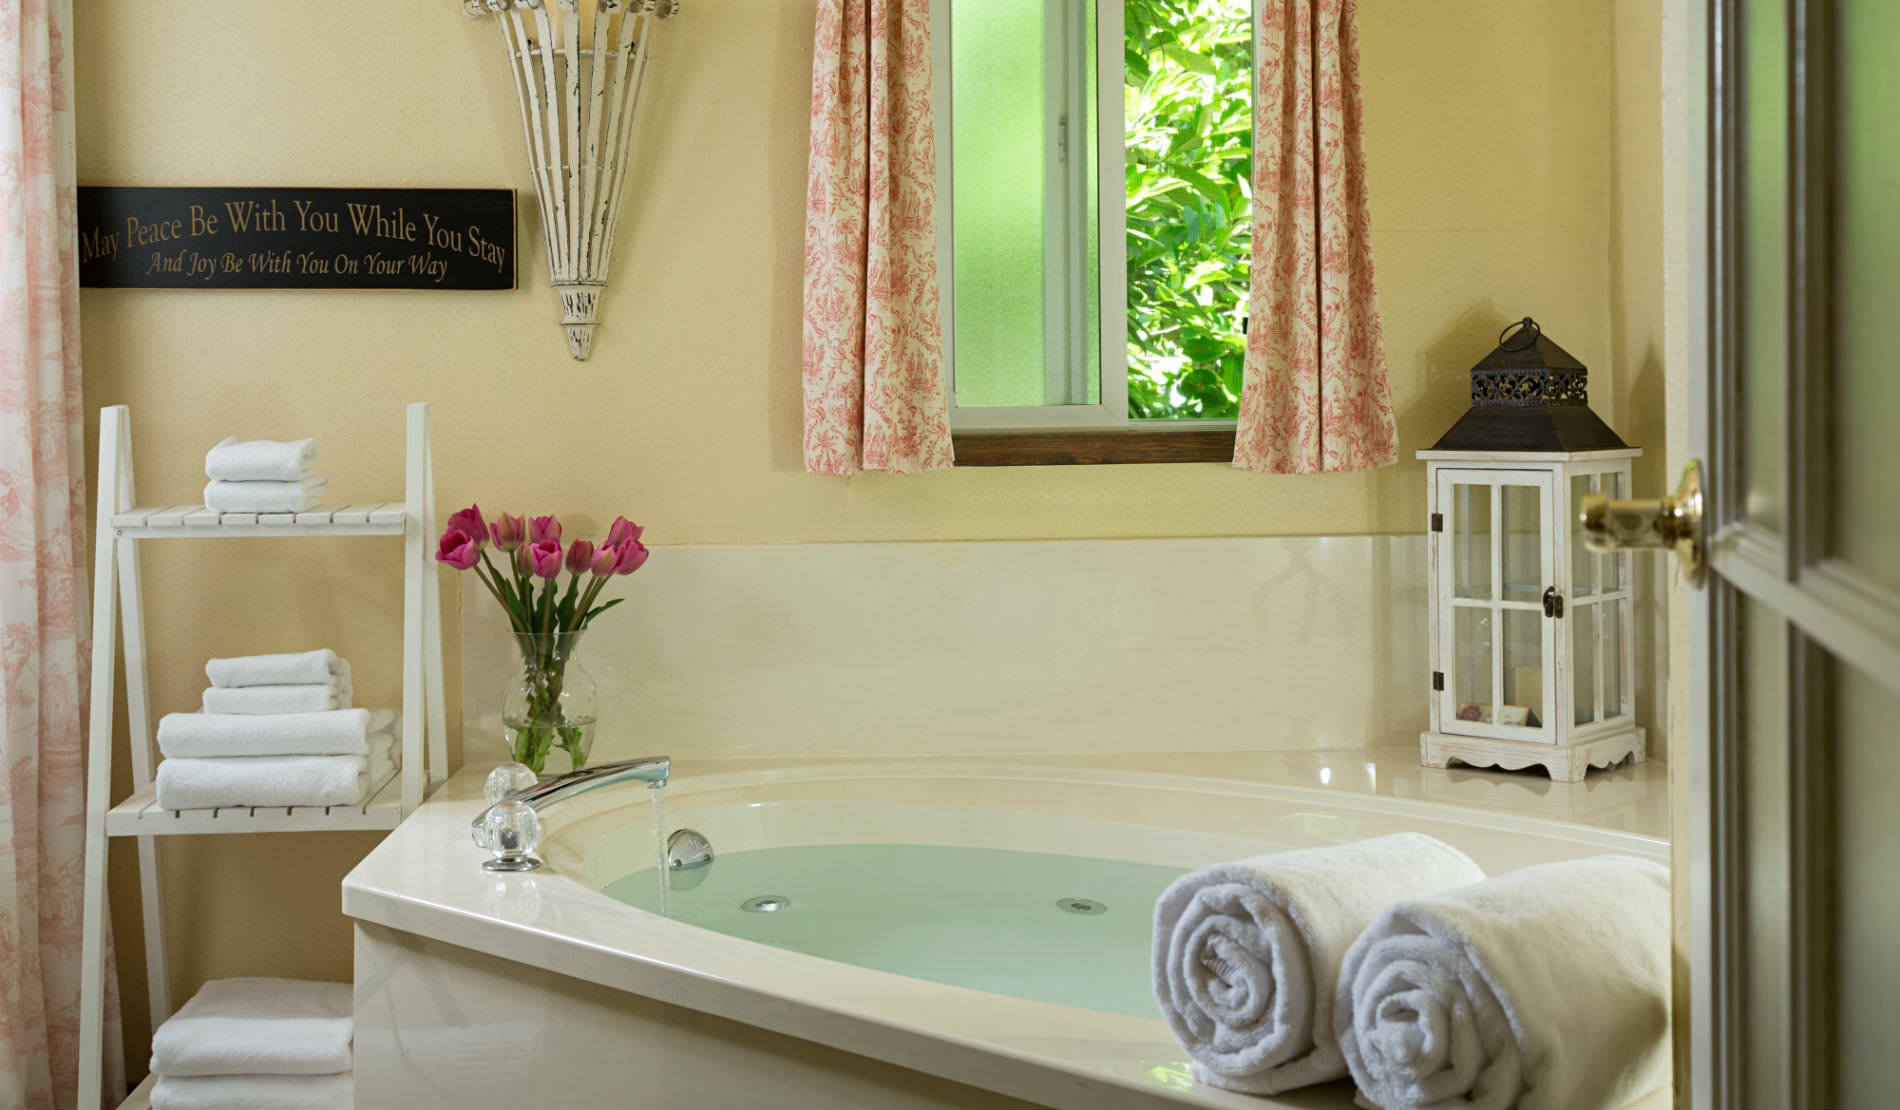 Whirlpool bath with white towels, pink flowers and window open to green tree.